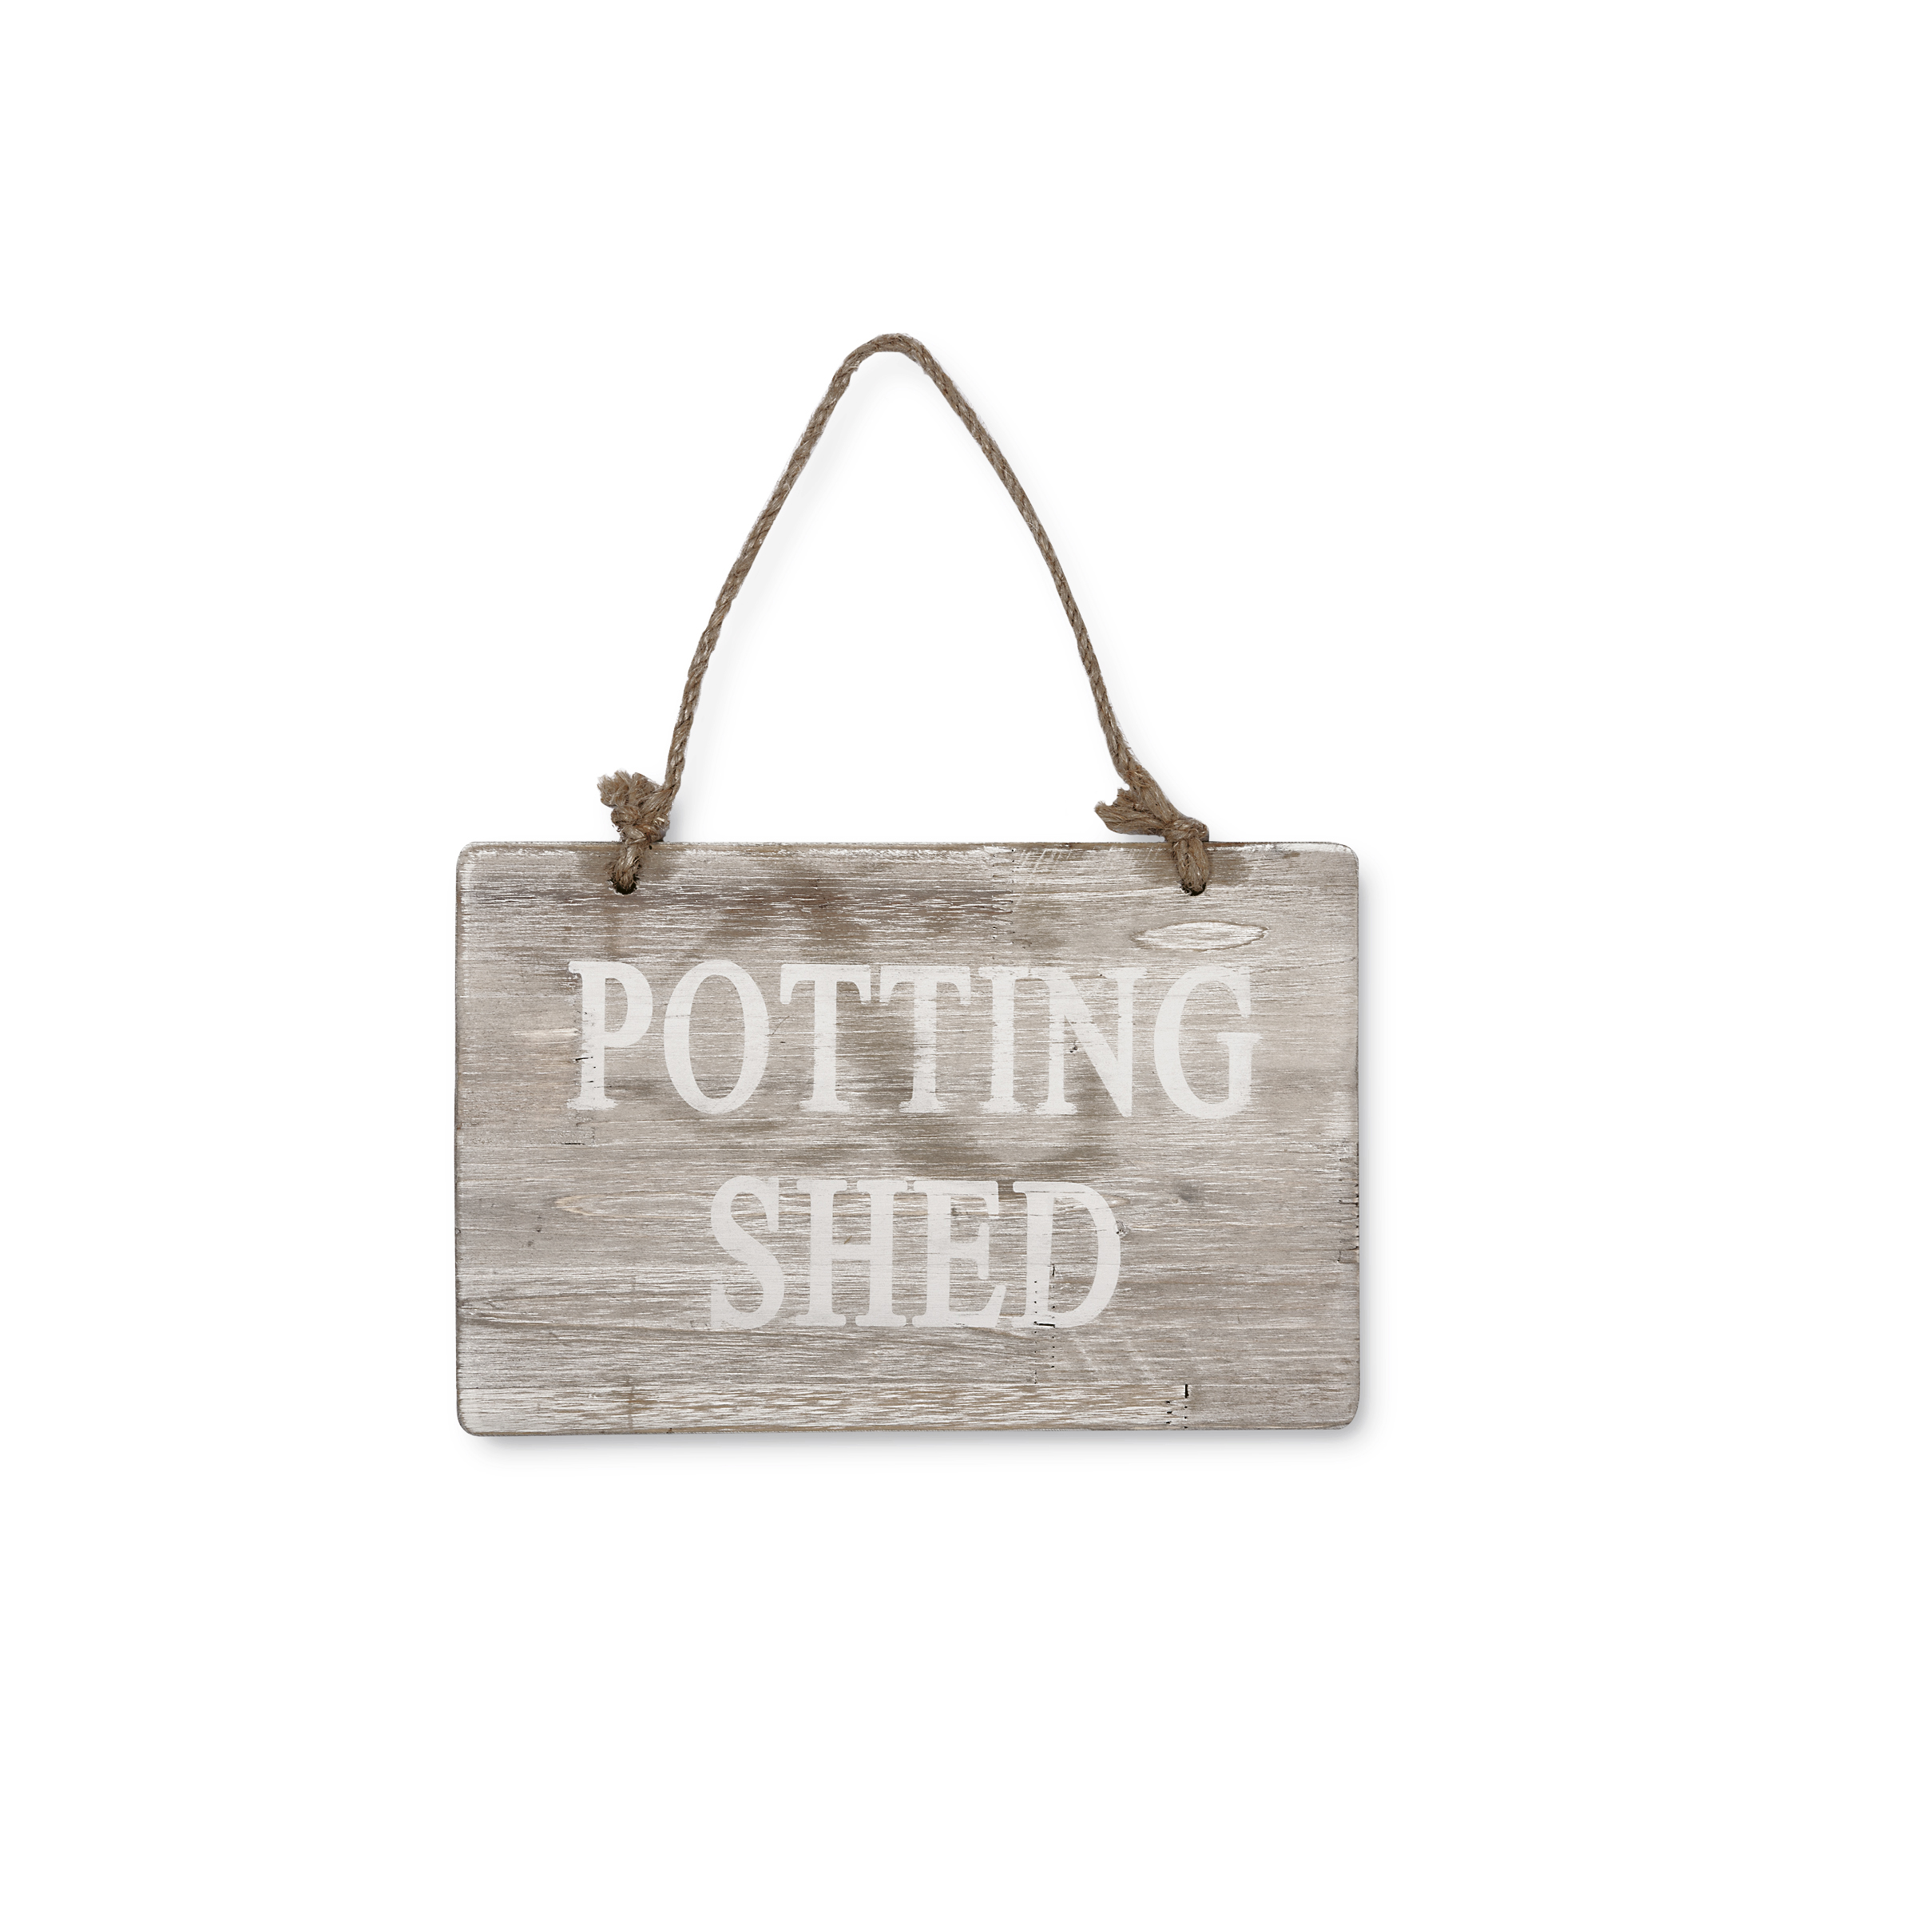 potting shed sign £12.00 www.shop.bl.uk